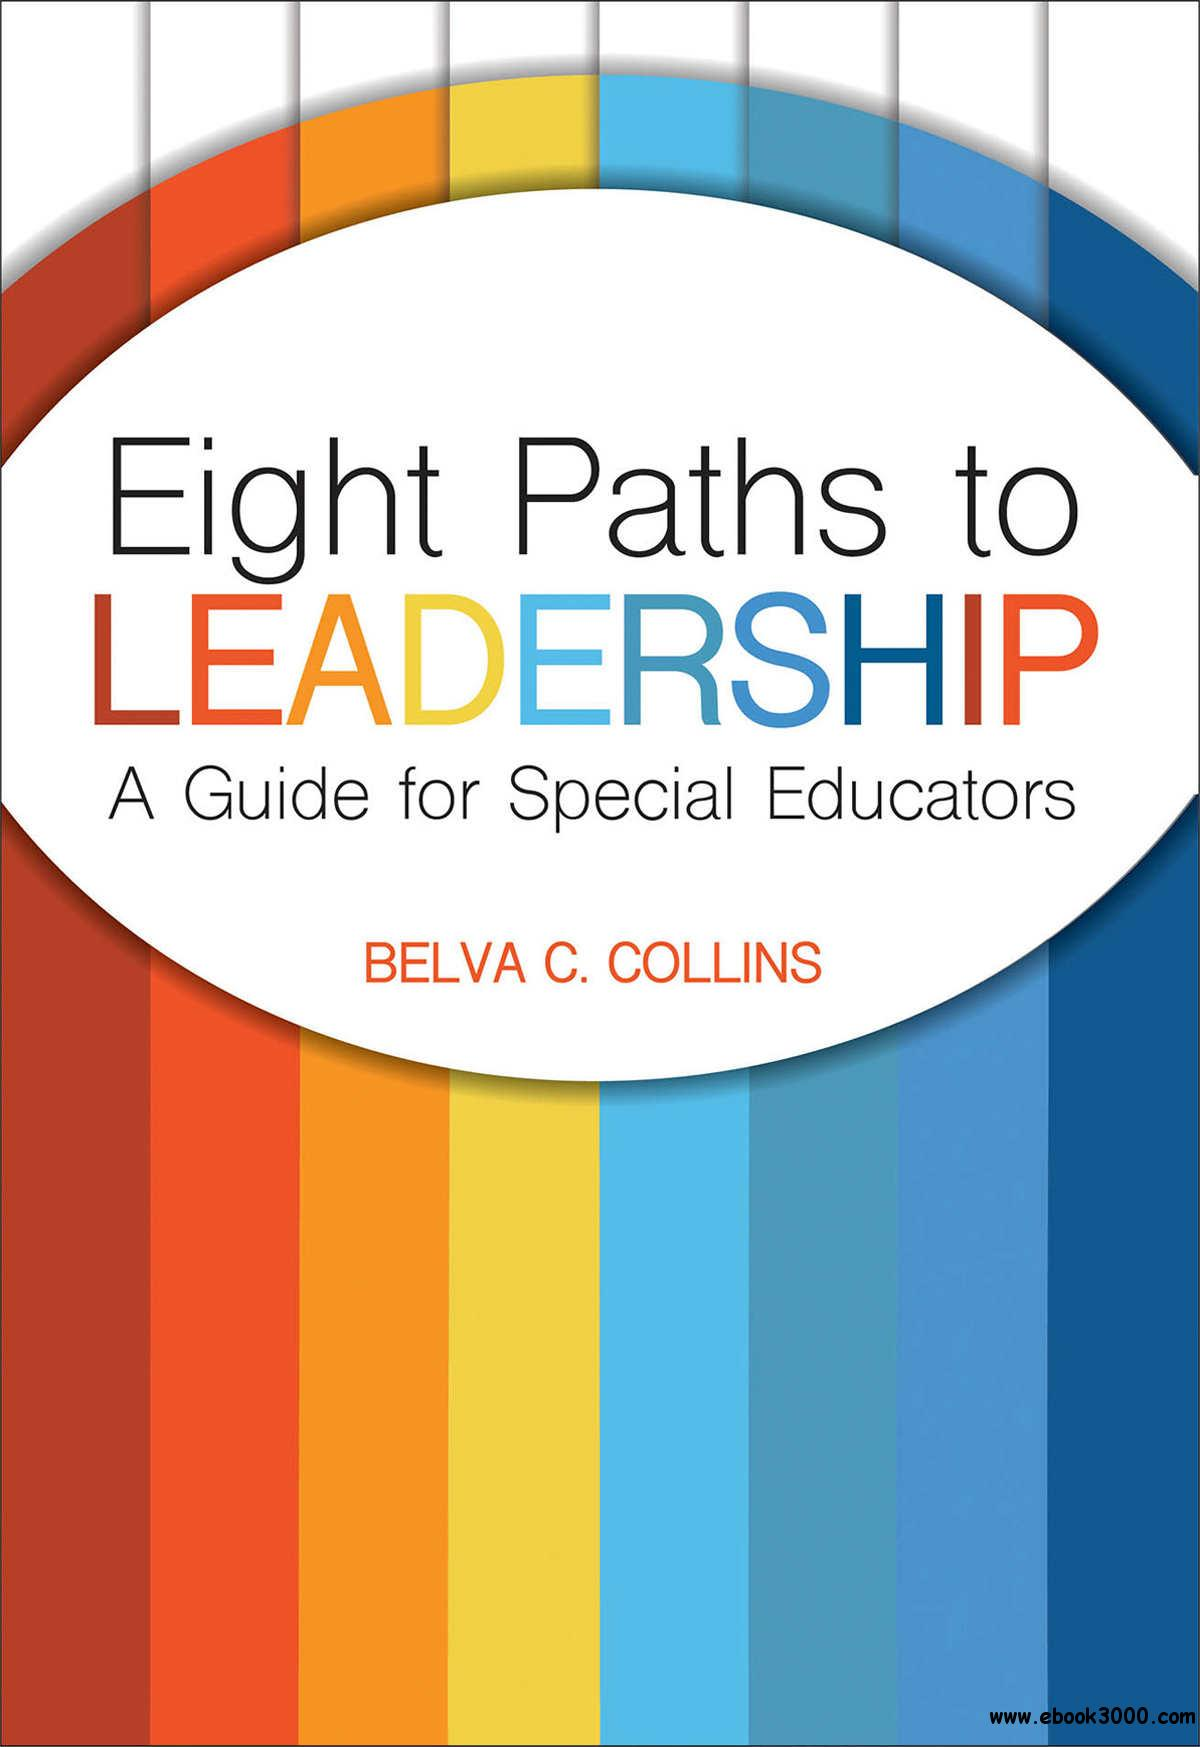 Eight Paths to Leadership